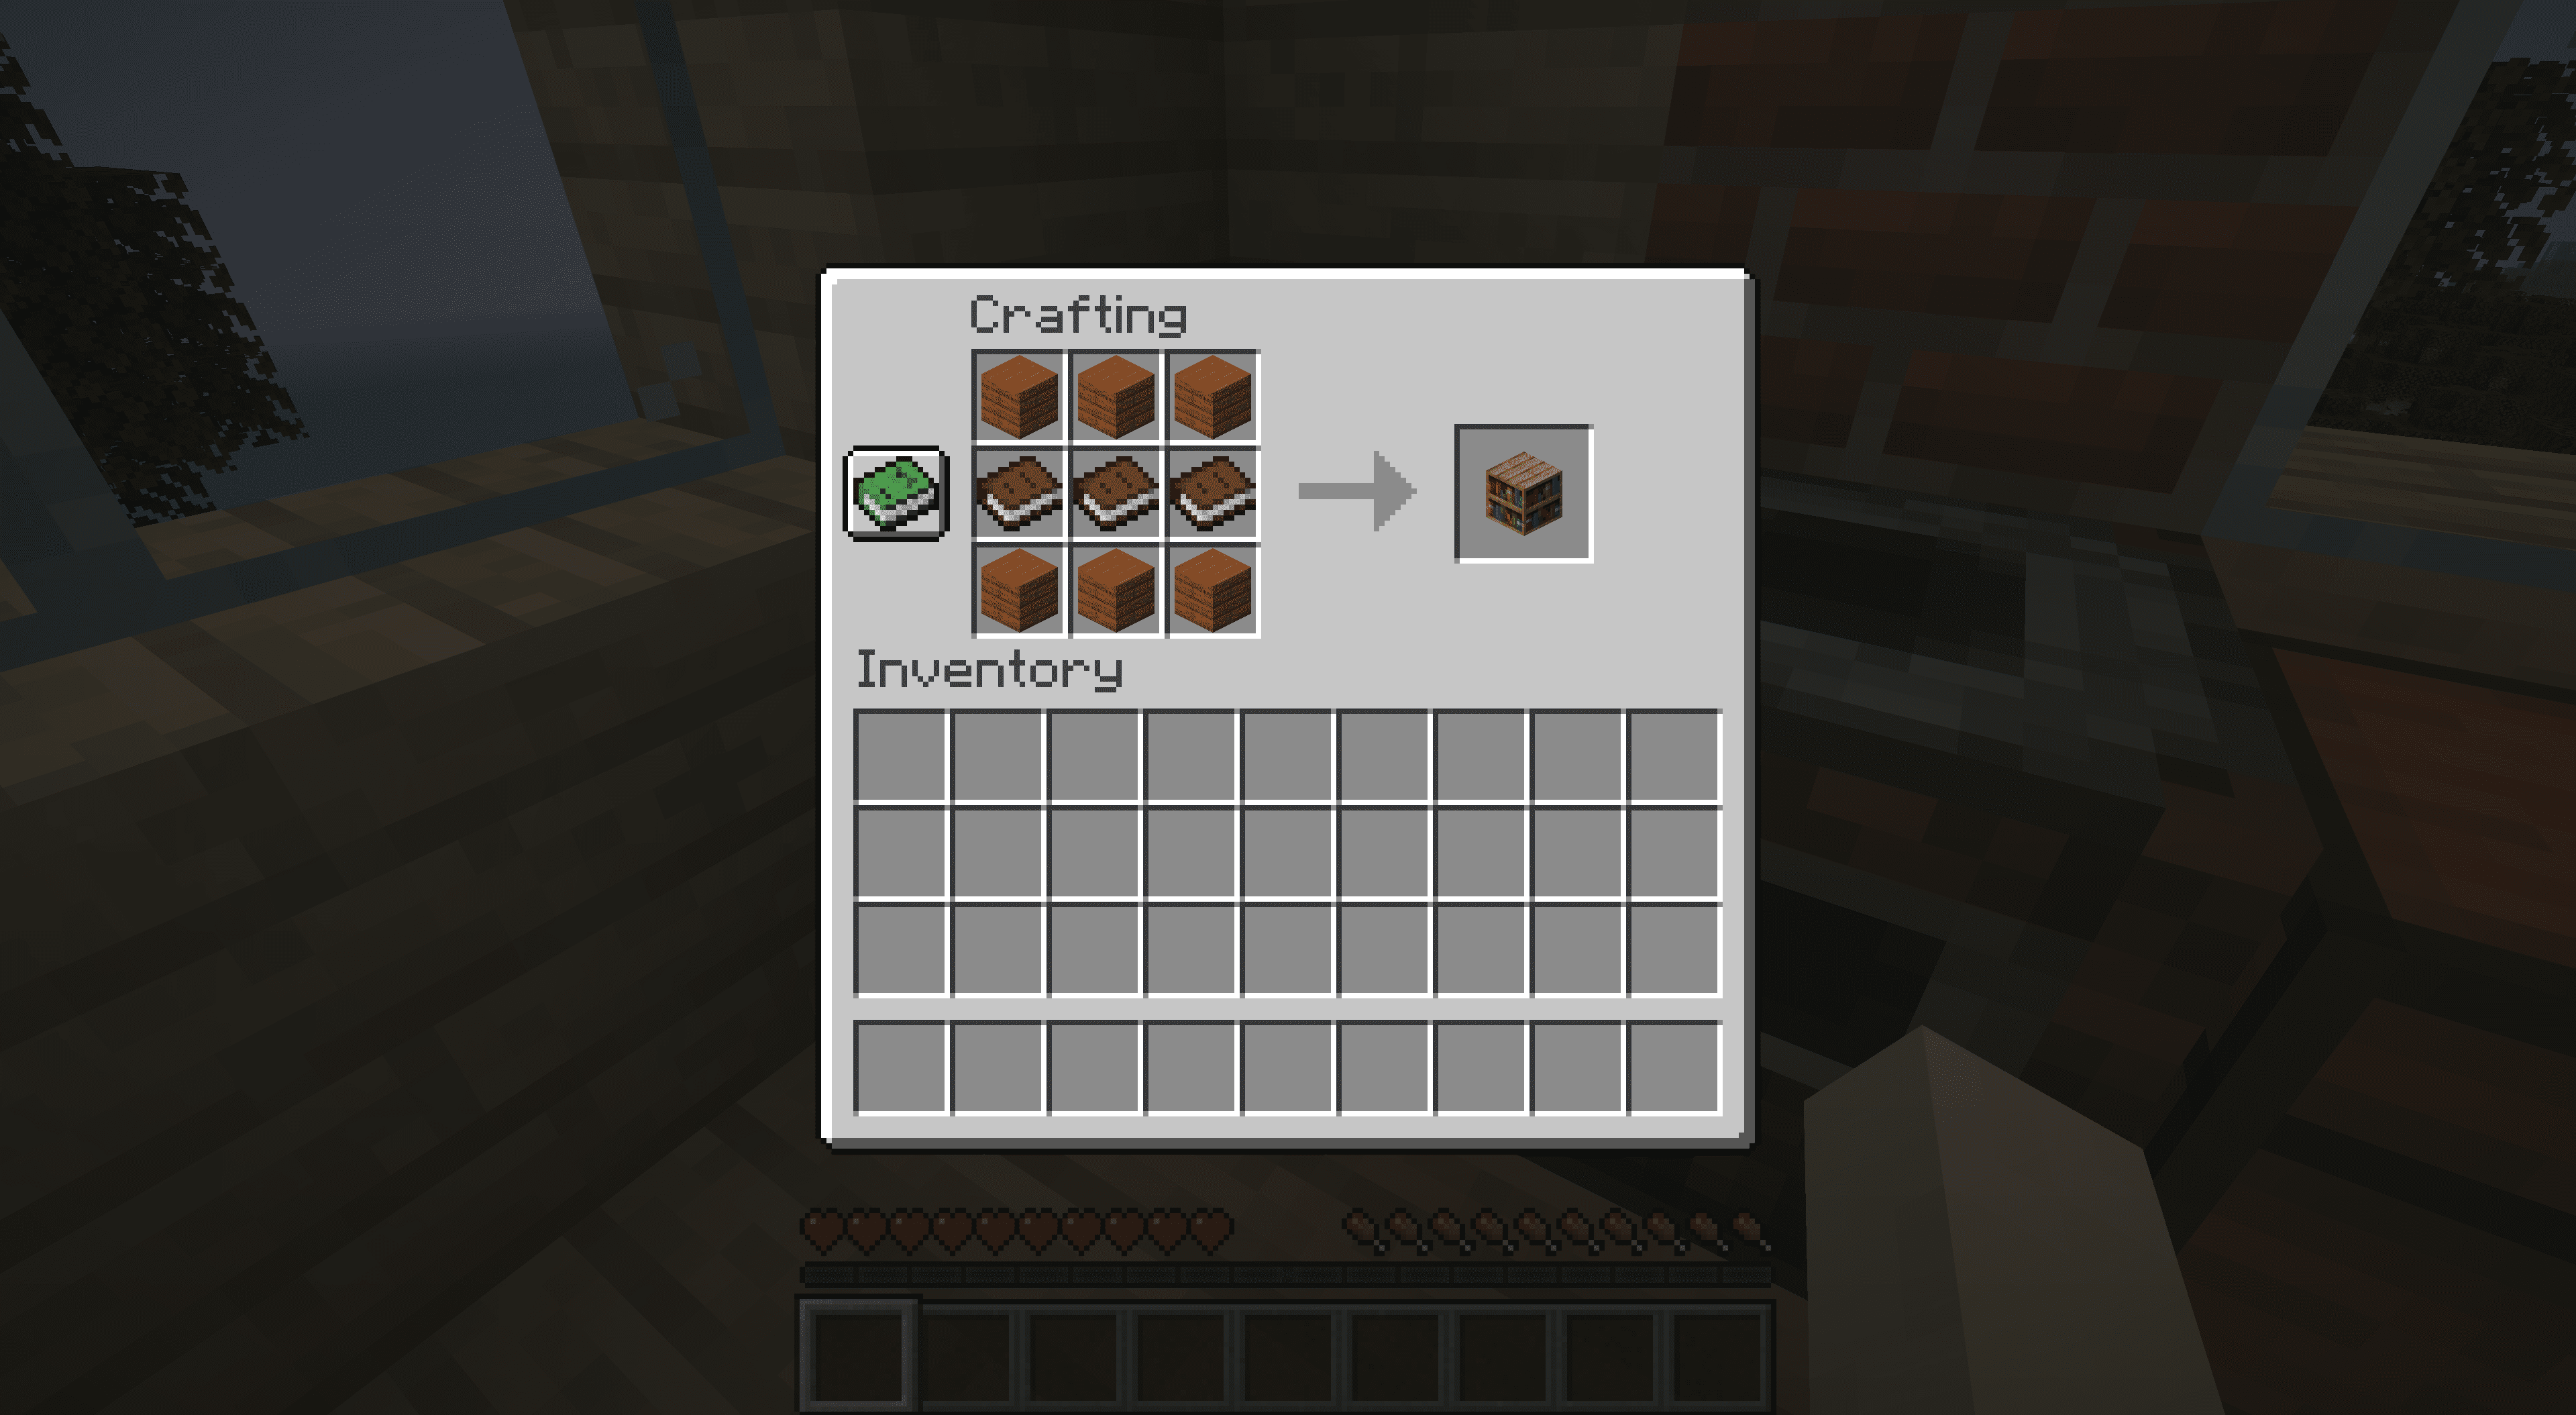 The recipe for crafting a bookshelf in Miencraft.